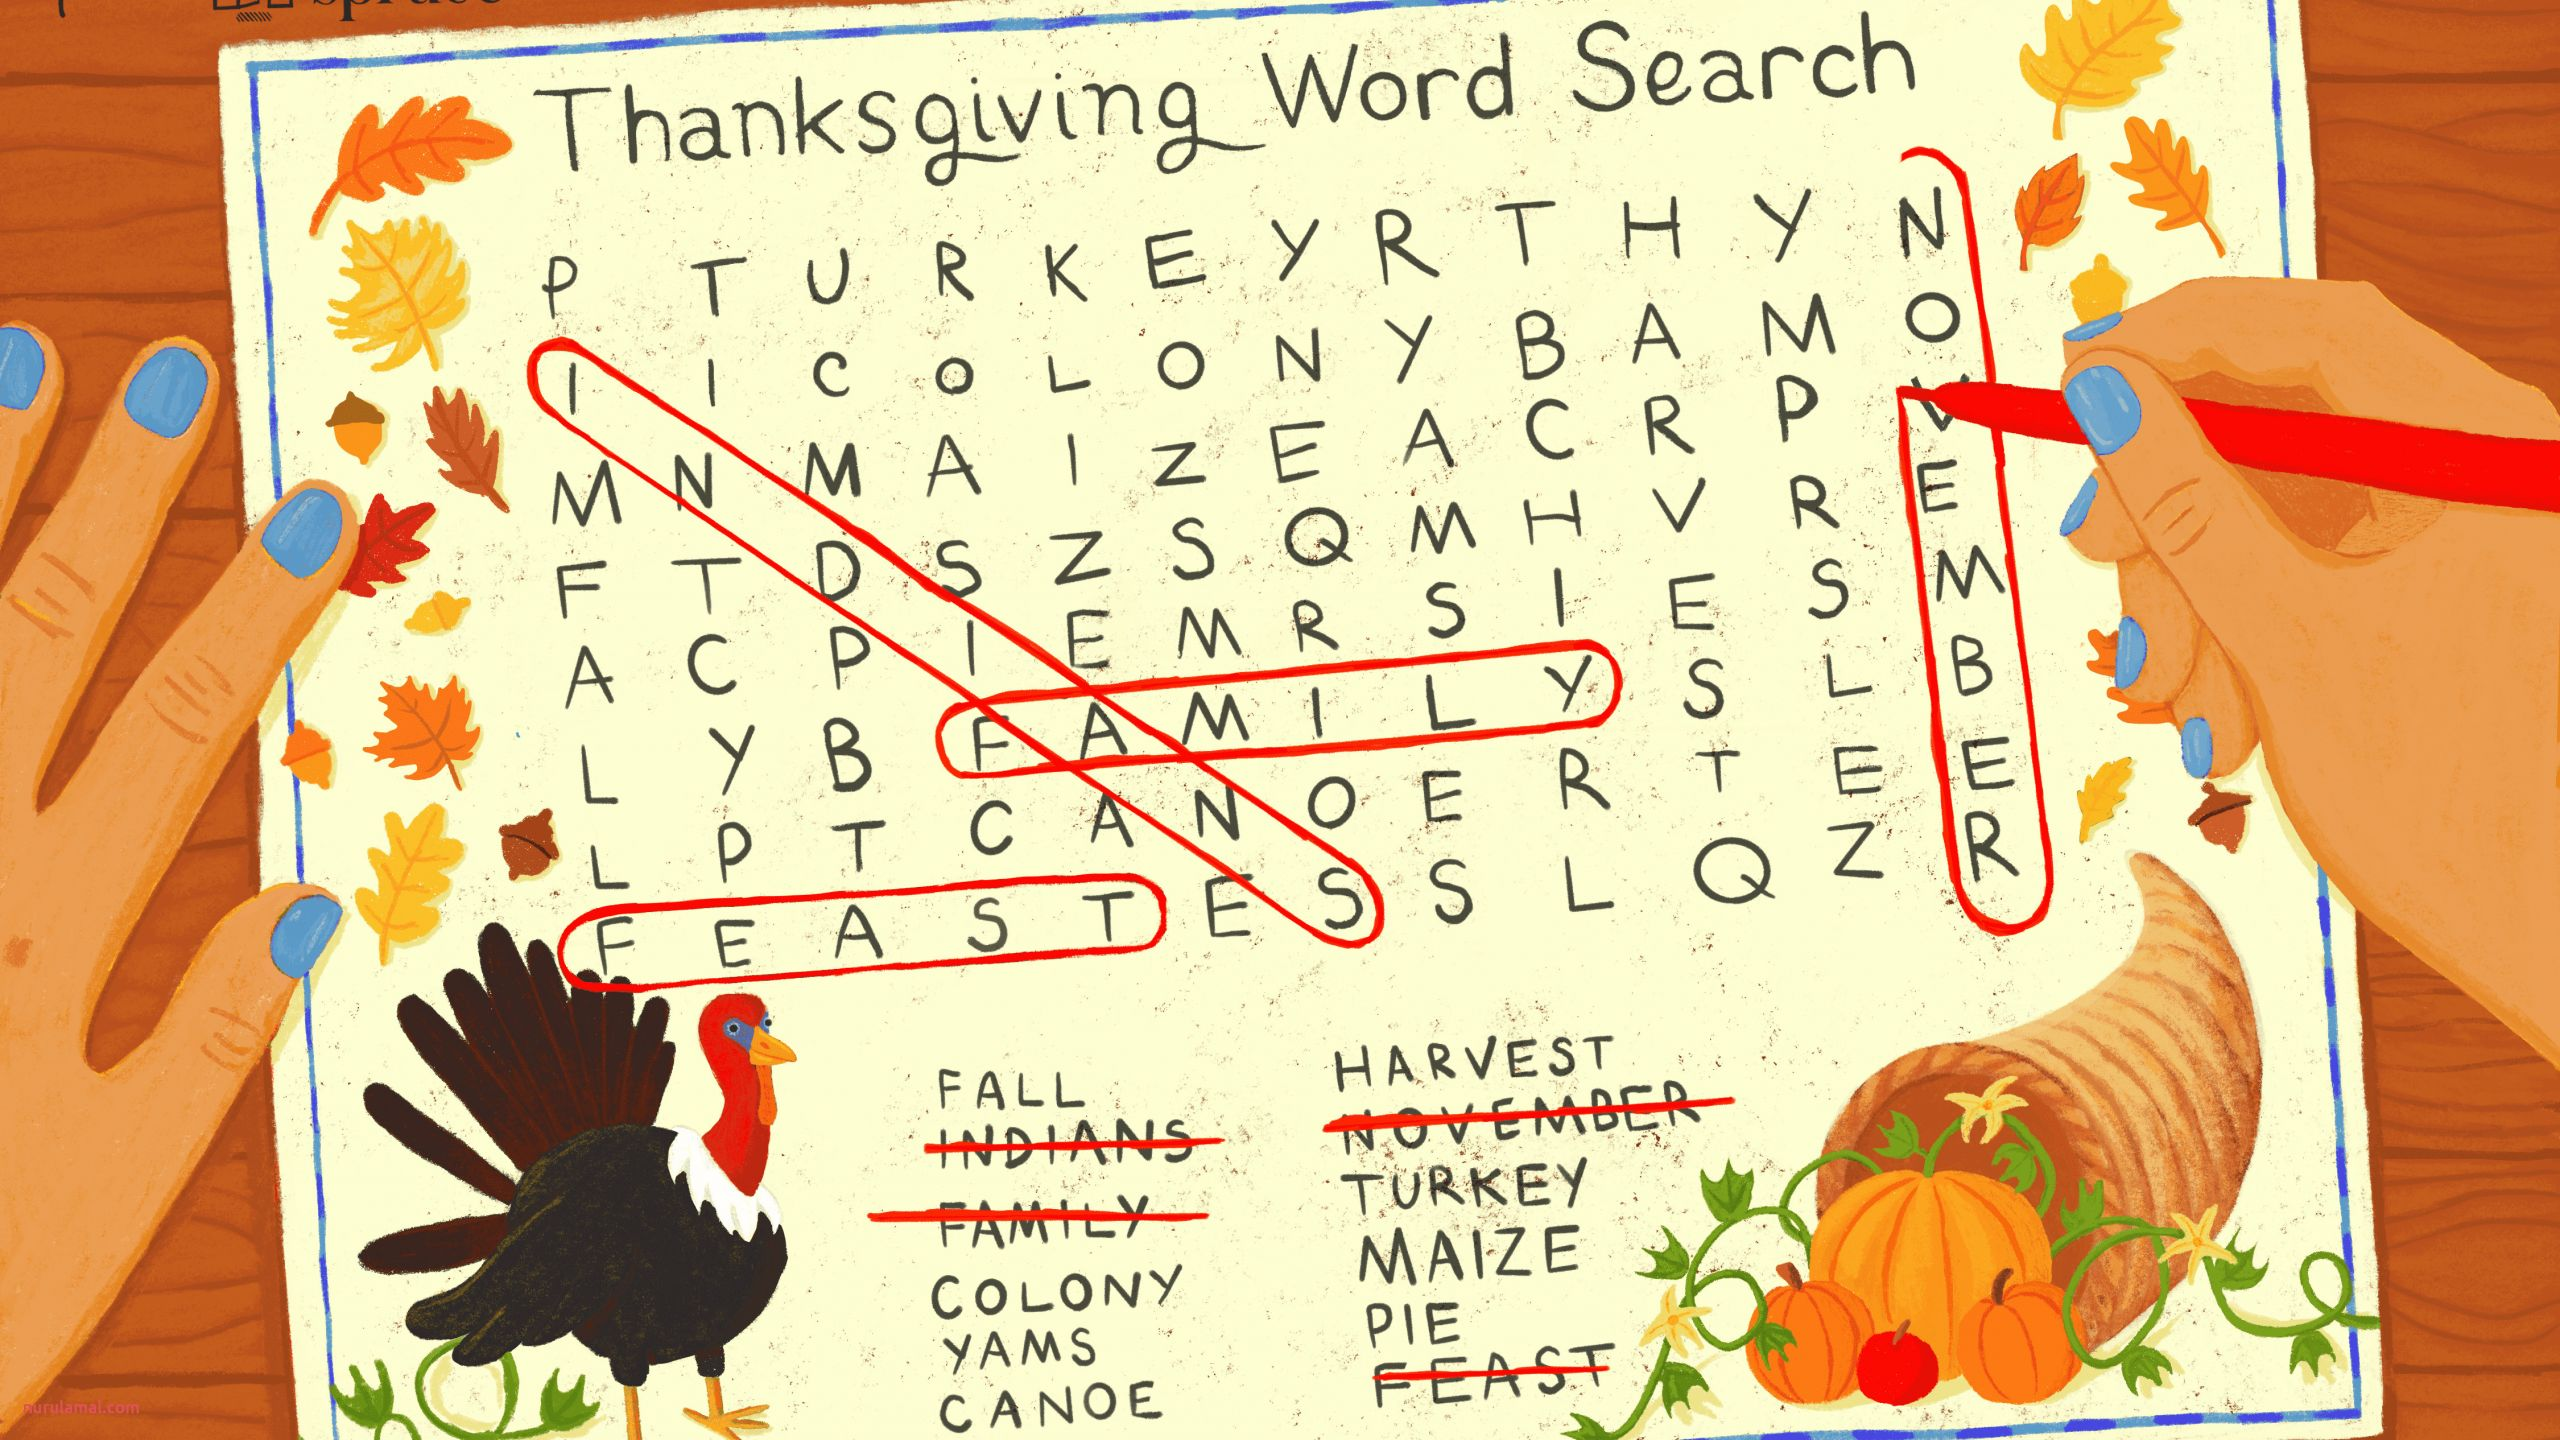 17 Free Thanksgiving Word Search Puzzles for All Ages